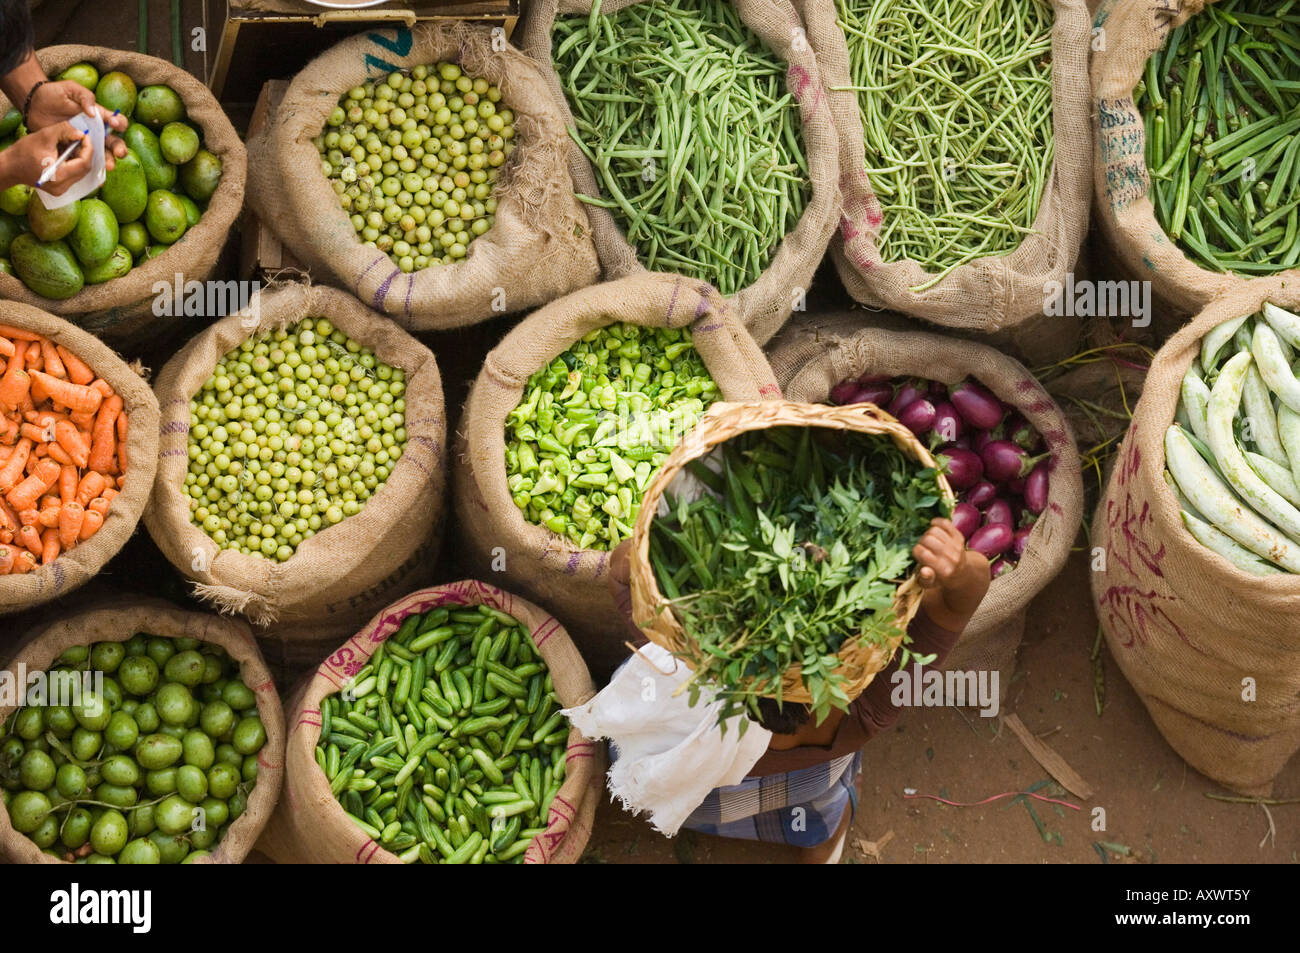 Marché, Trivandrum, Kerala, Inde Photo Stock